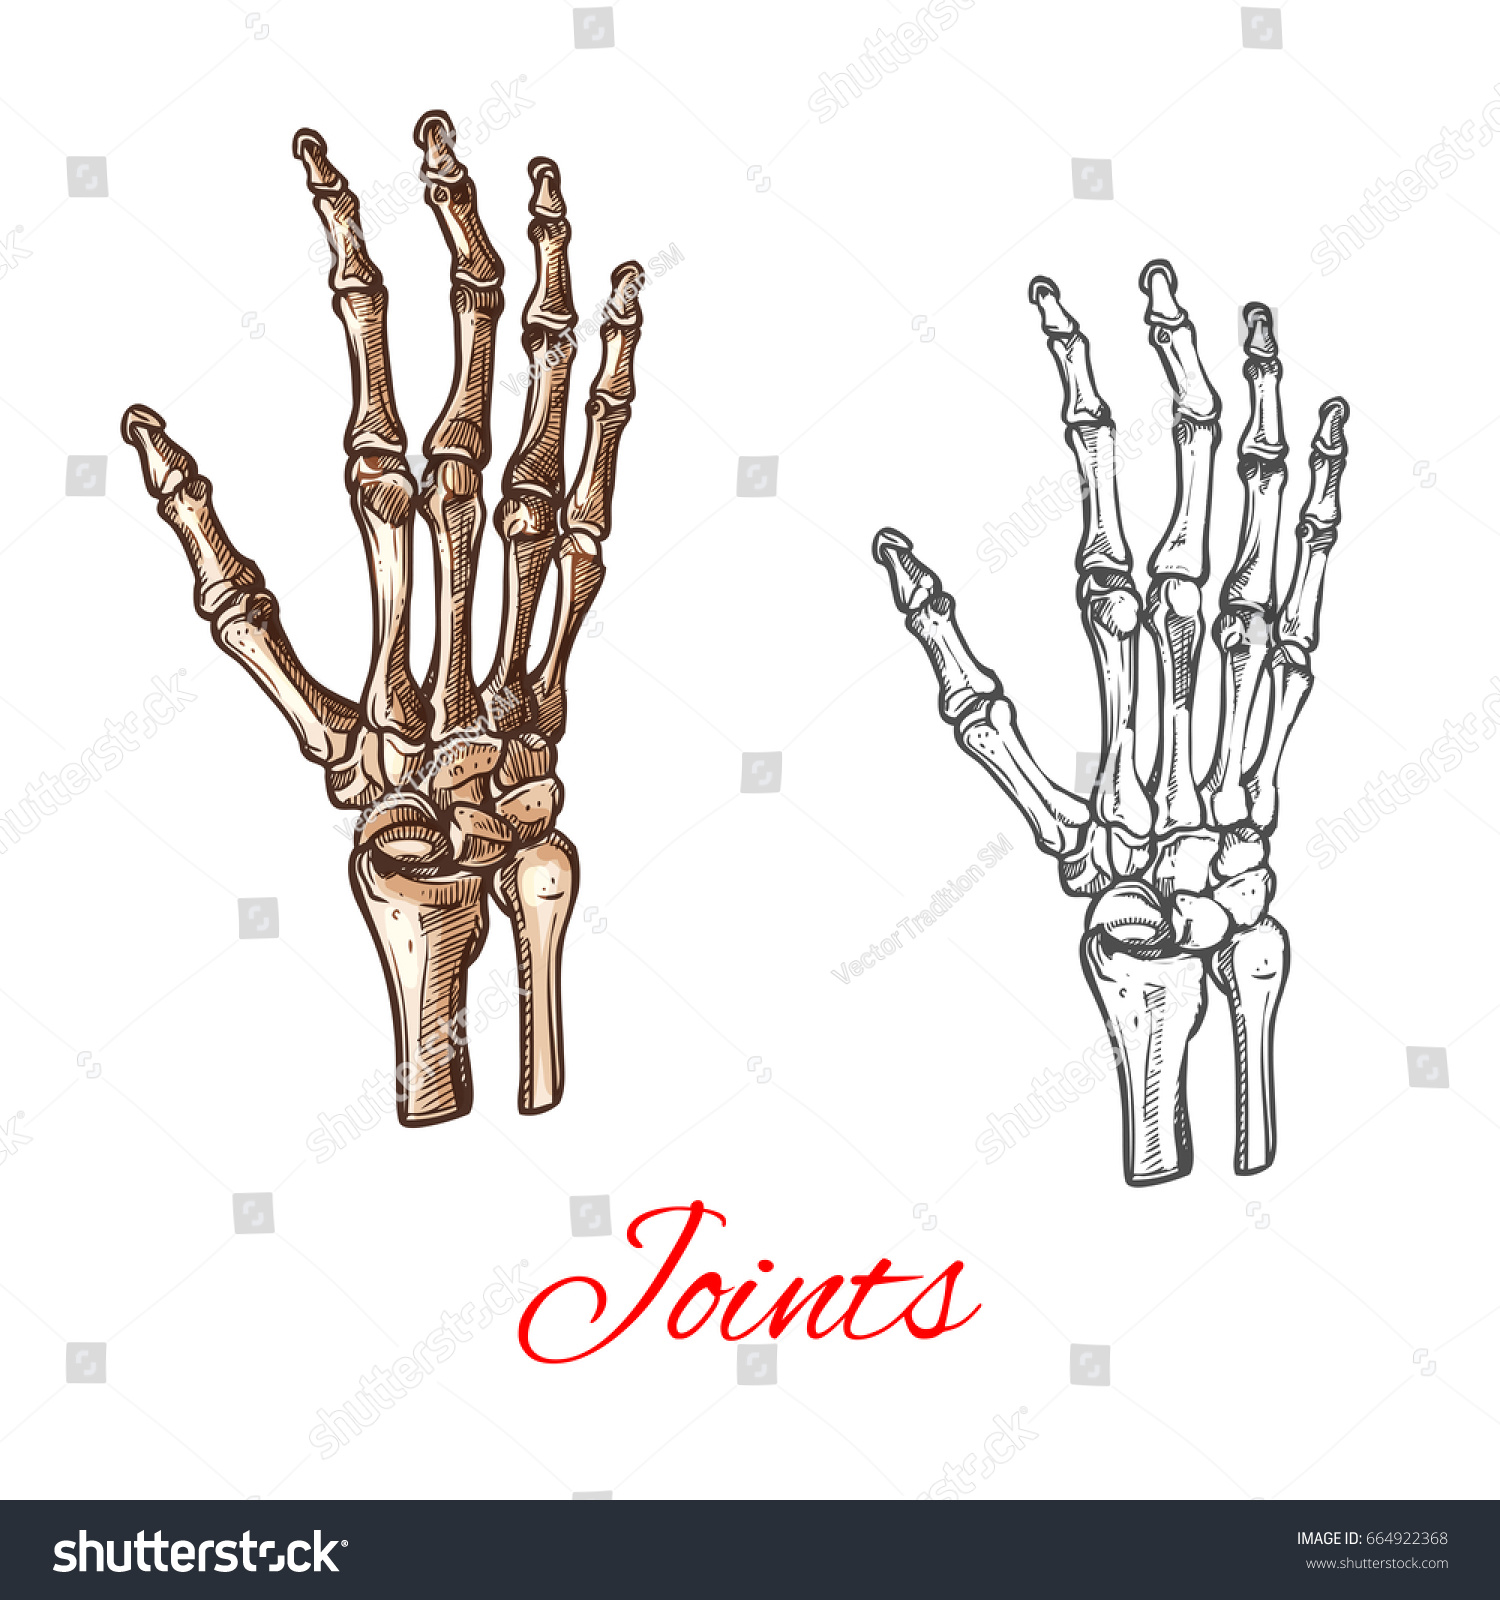 Hand Bones And Joints Diagram Human Skeleton Vector Stock Royalty Free Rh Shutterstock Com